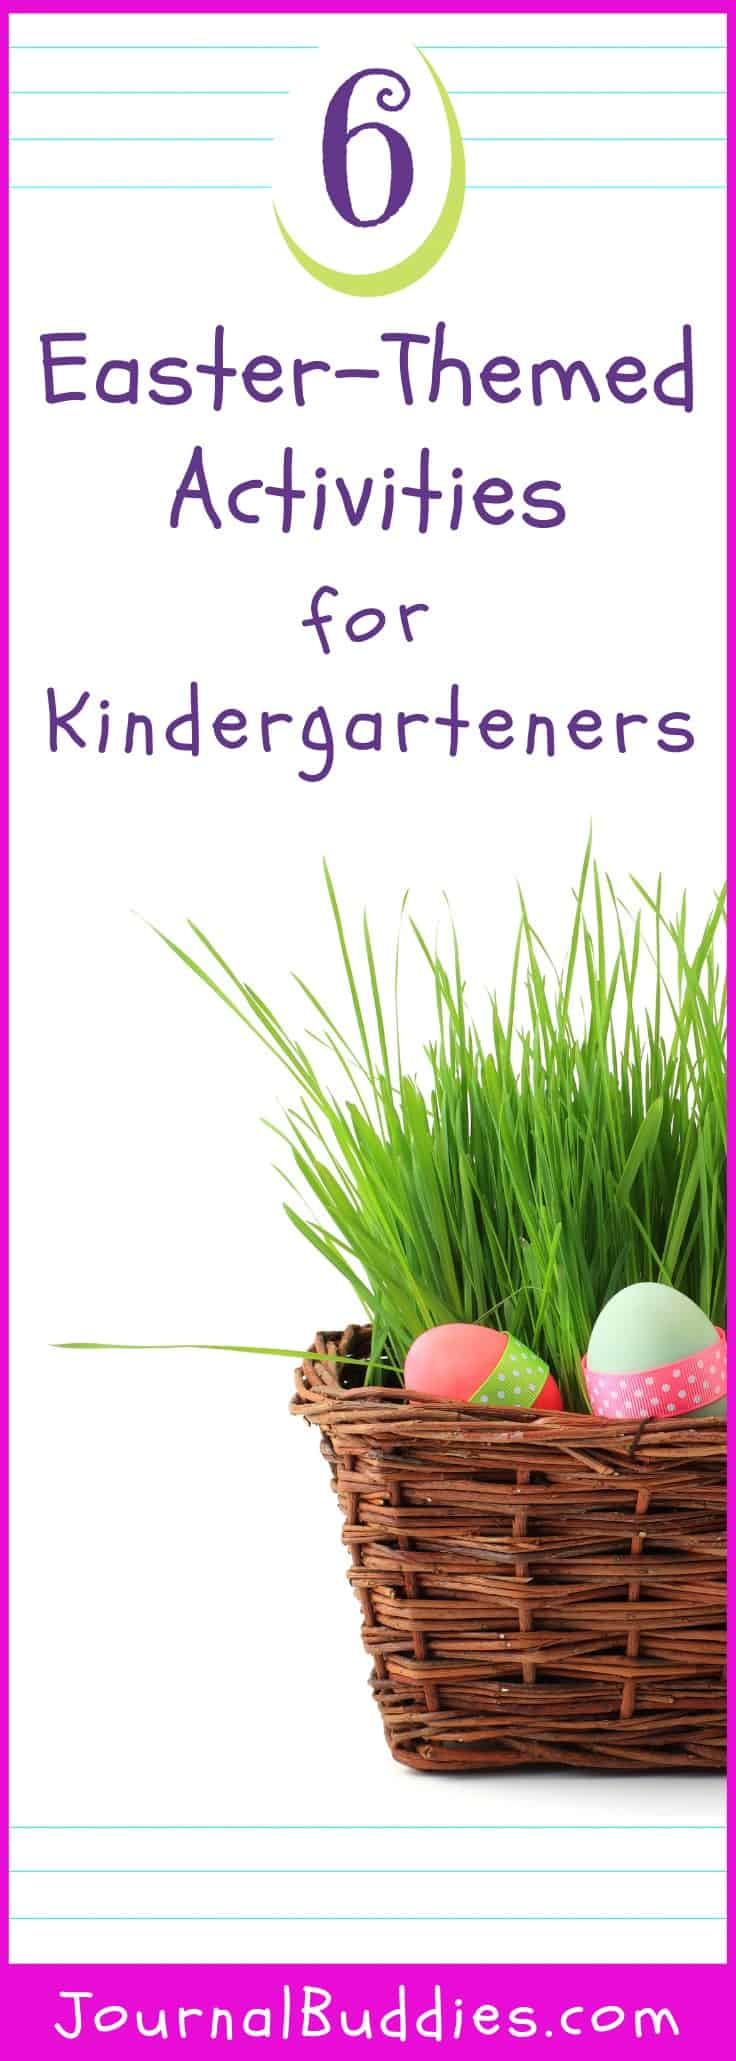 There are plenty of creative ways to incorporate the fun of Easter into the traditional curriculum subjects, including science, math, and writing. Here are some Easter activities you can consider using in your kindergarten classroom this year!